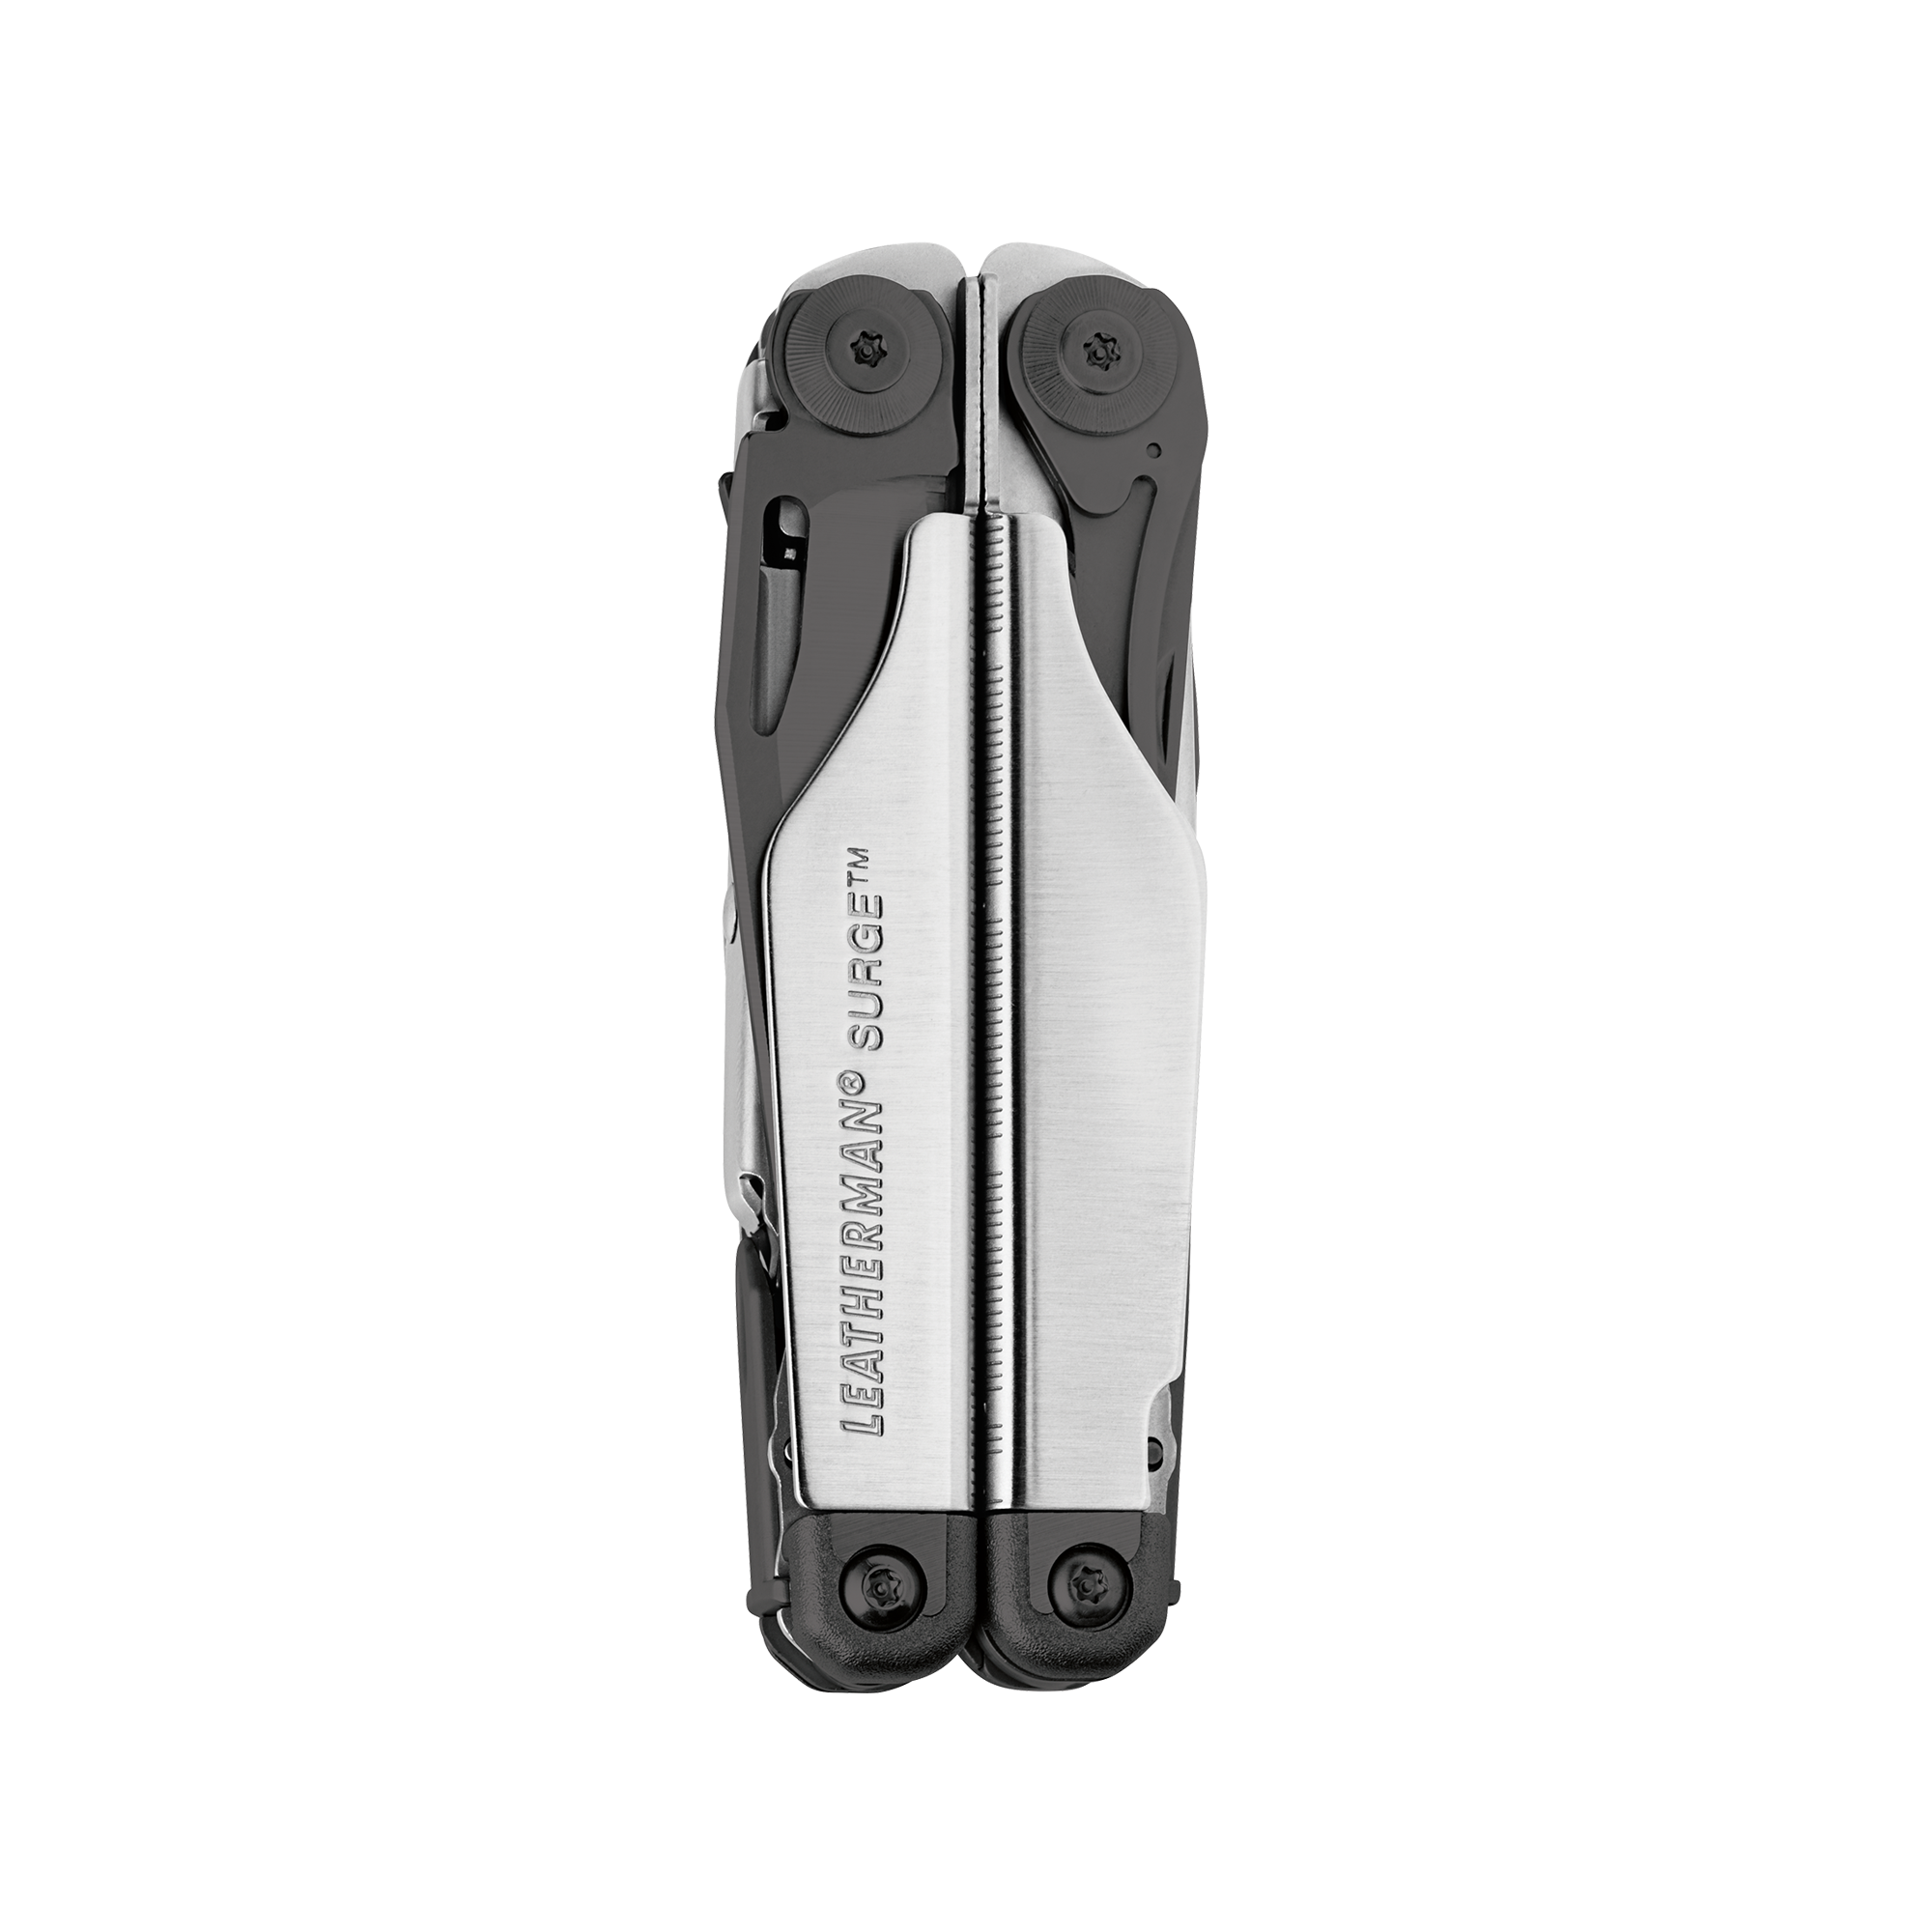 Leatherman Surge multi-tool, black and stainless steel, heavy duty, 21 tools, closed view